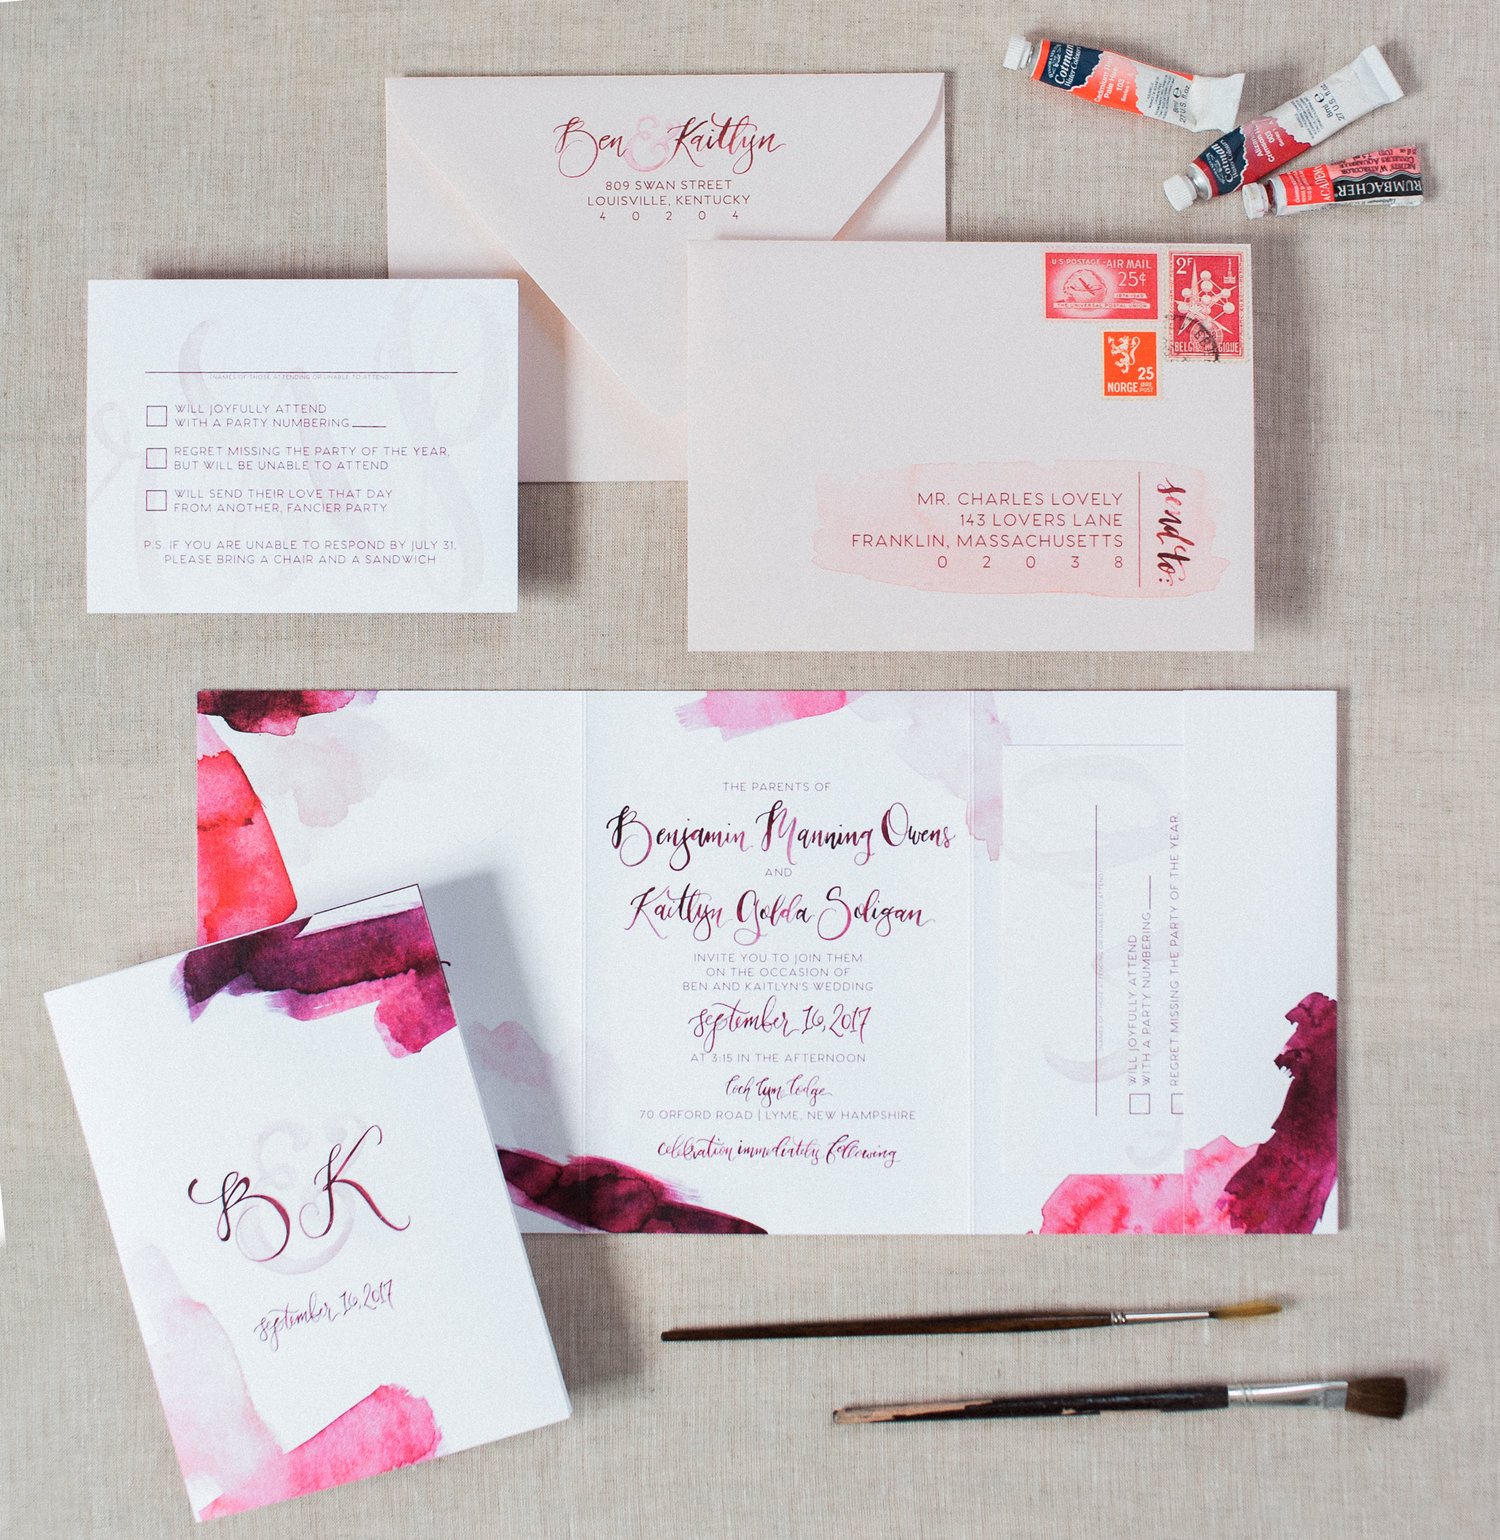 WATERCOLOR BRUSH STROKE WEDDING INVITATIONS